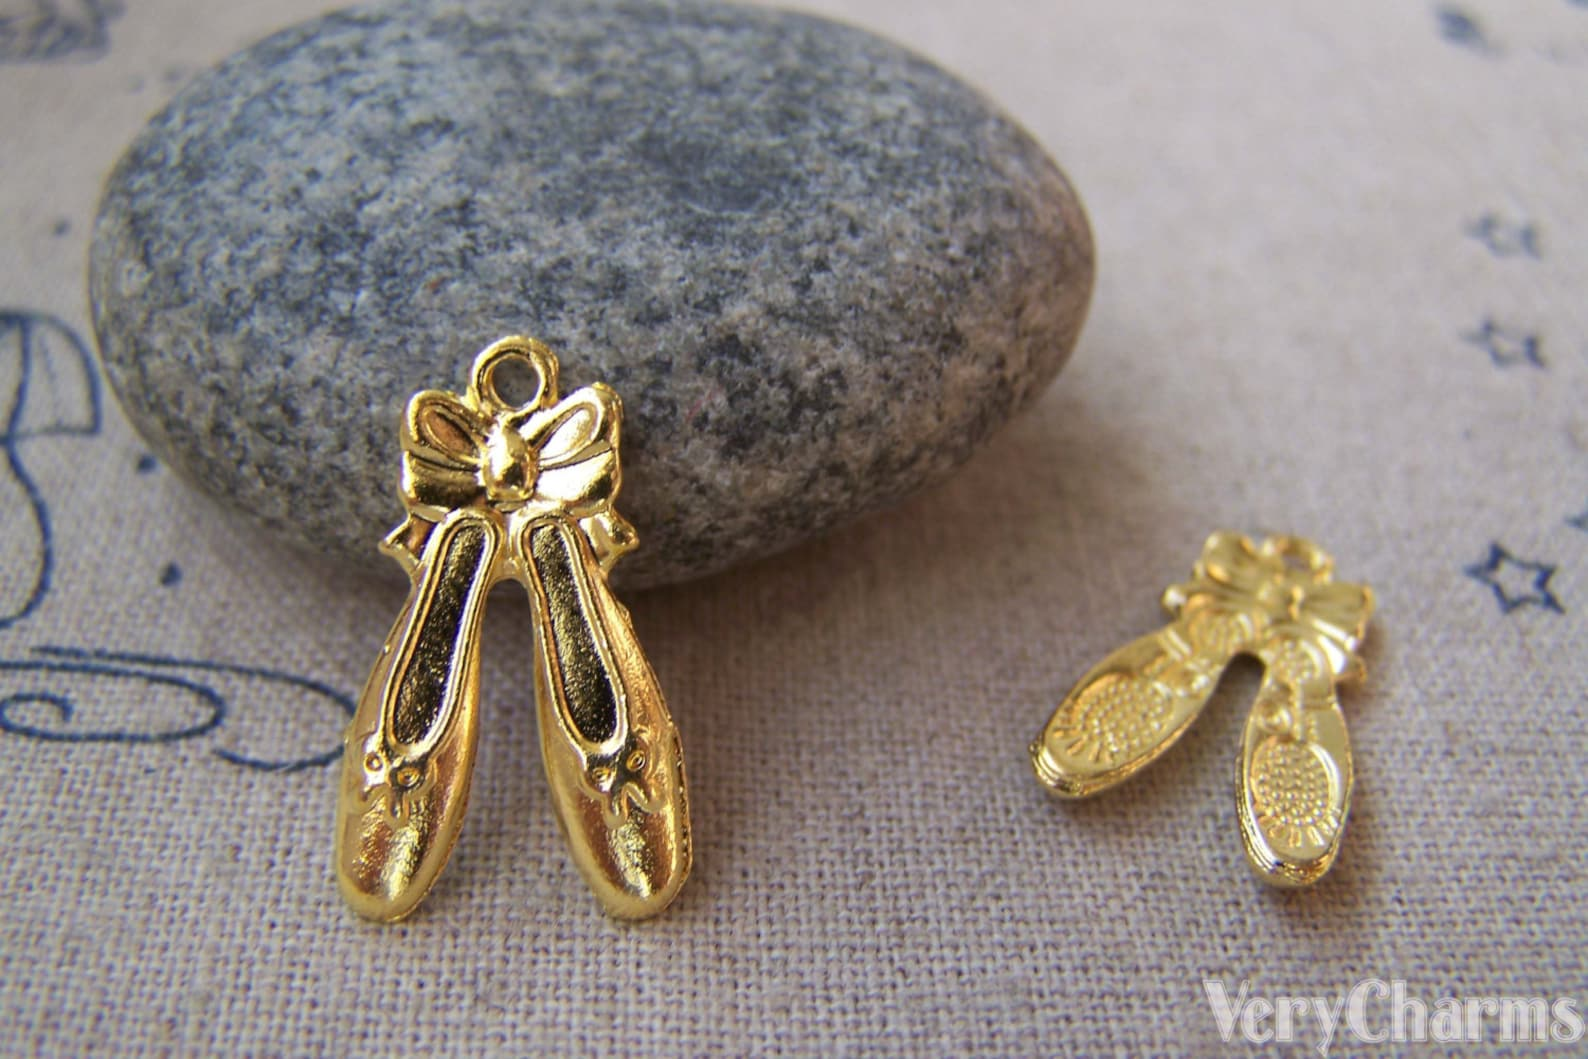 20 pcs of gold tone bow tie ballet shoes charms 12x20mm a3348